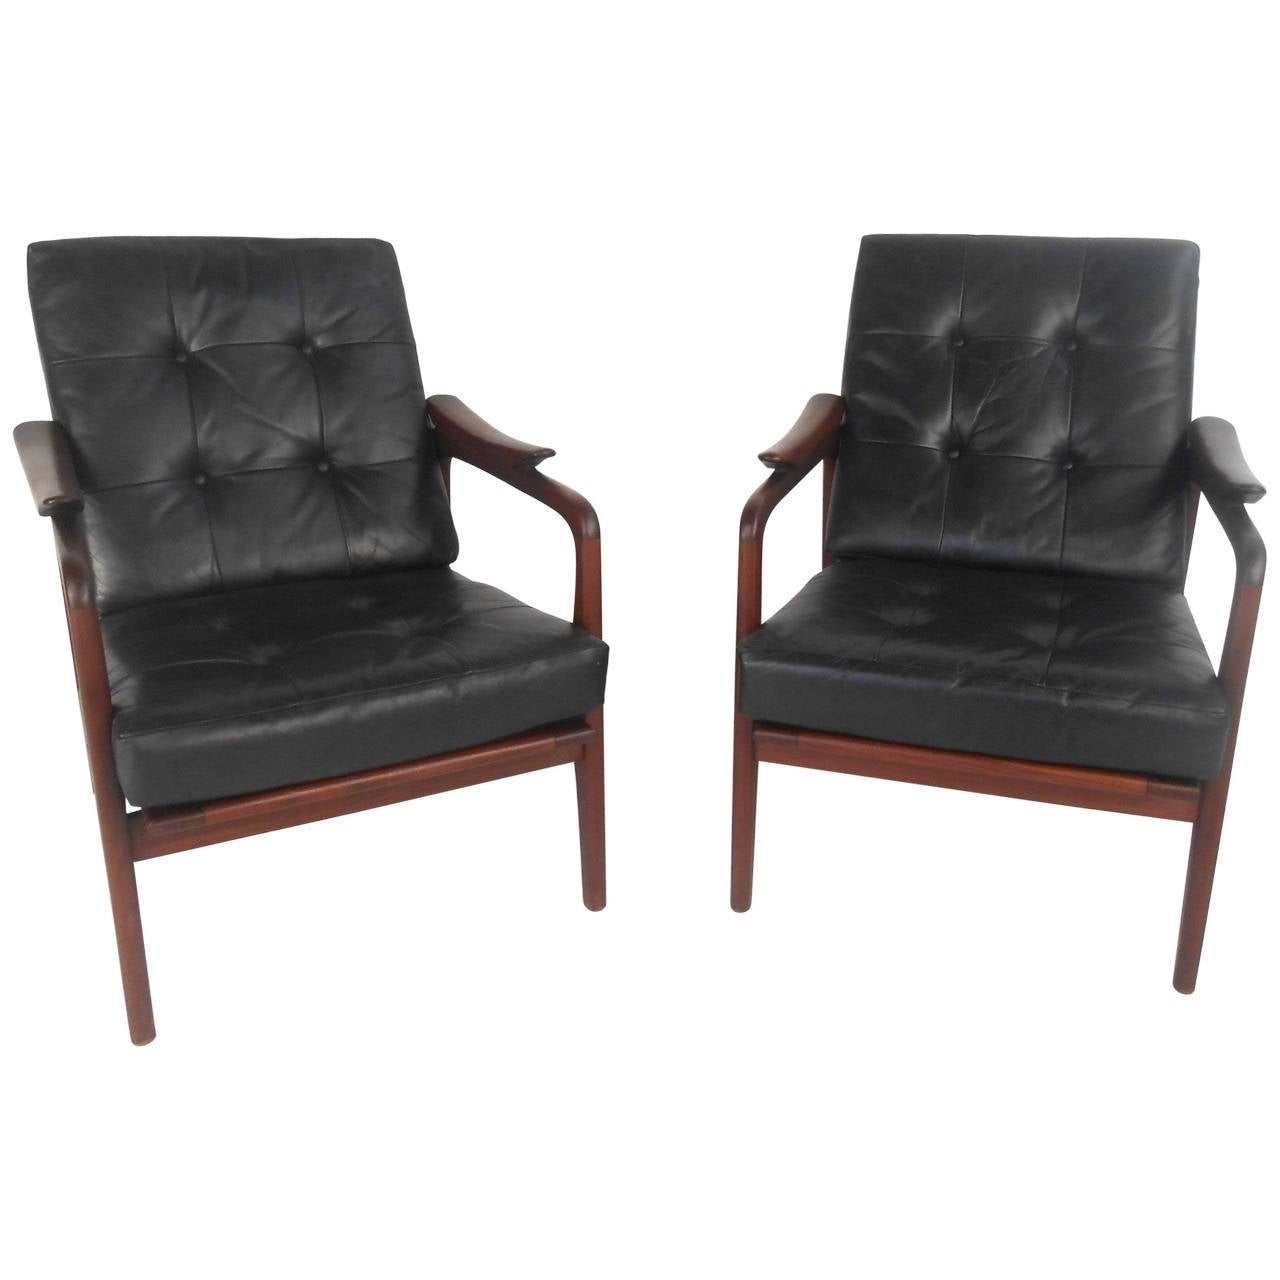 Pair beautiful mid century modern leather lounge chairs at for Mid century modern leather chairs